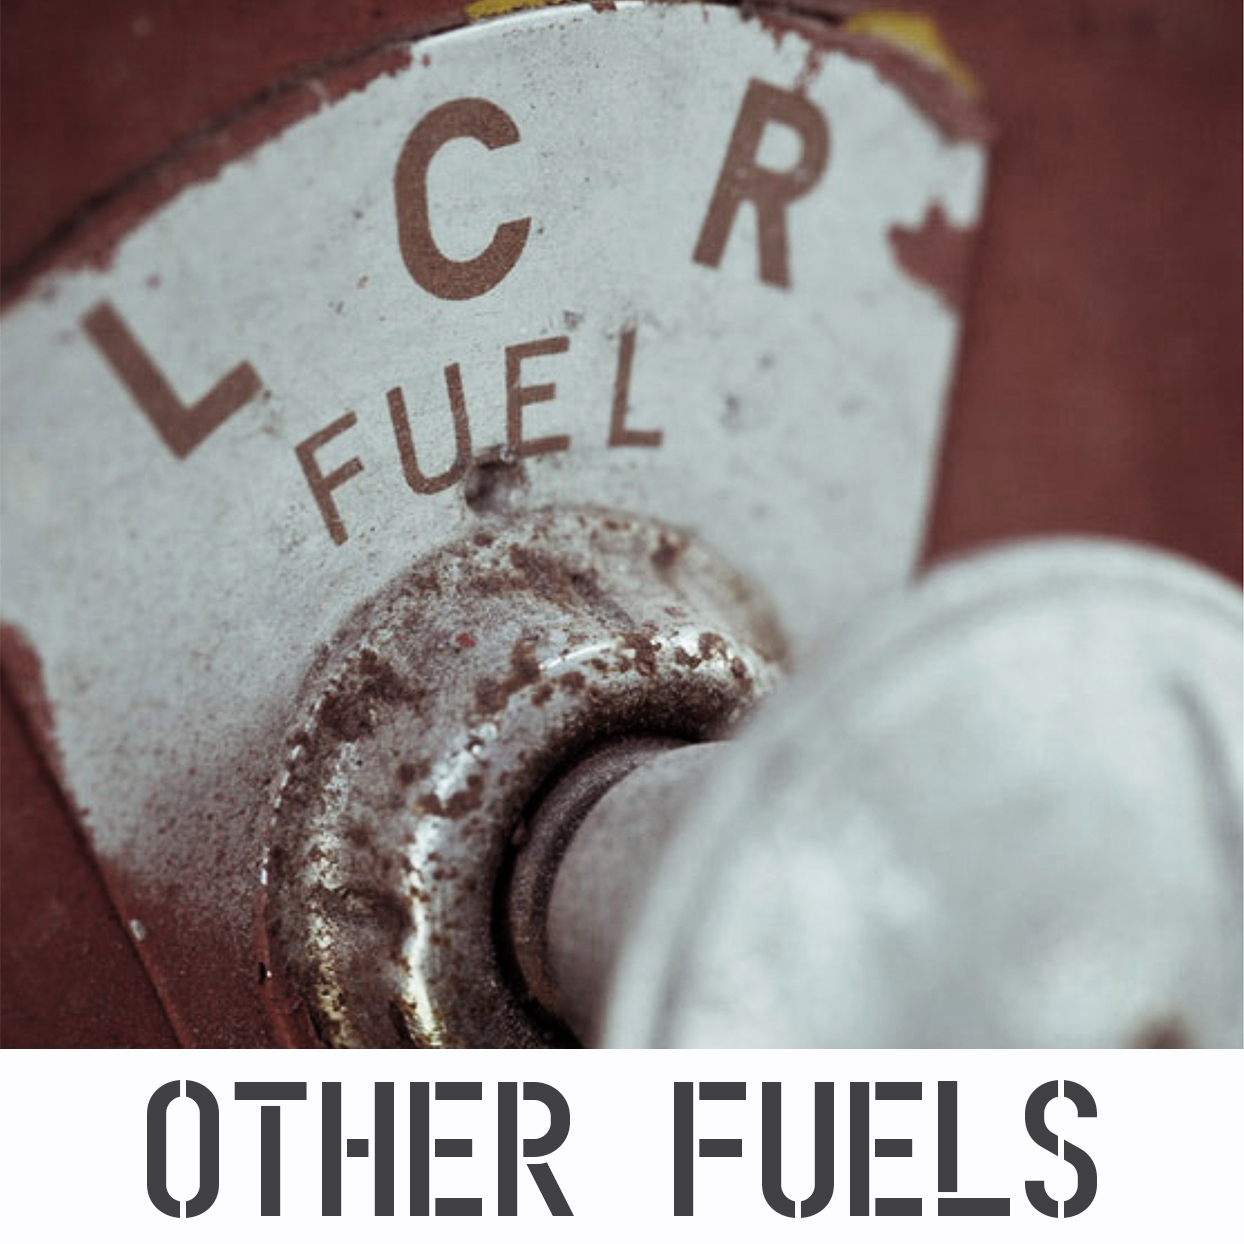 OTHER FUELS R.jpg